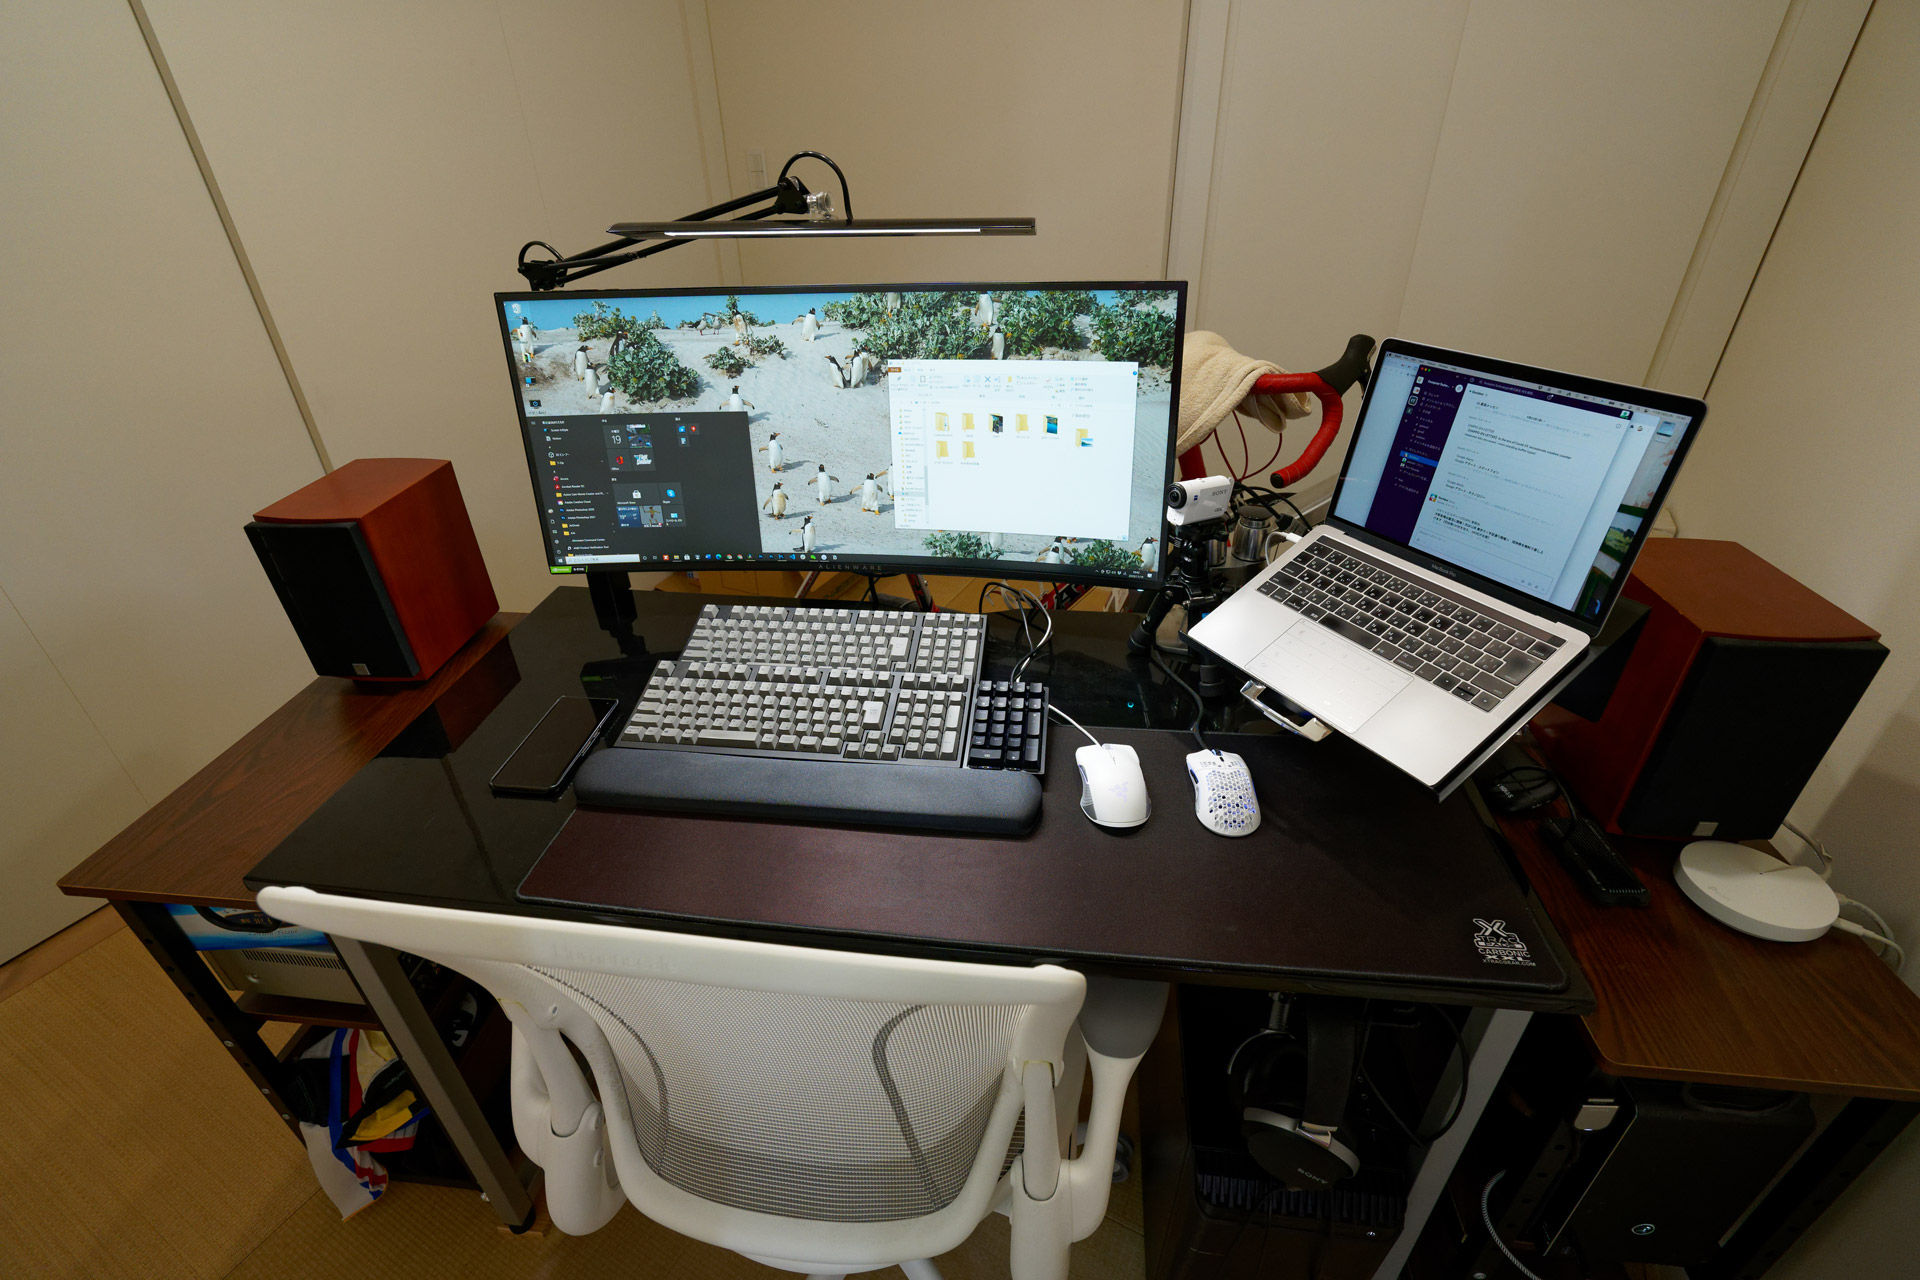 Two desktop PCs and one MacBook Pro connected to a single monitor.